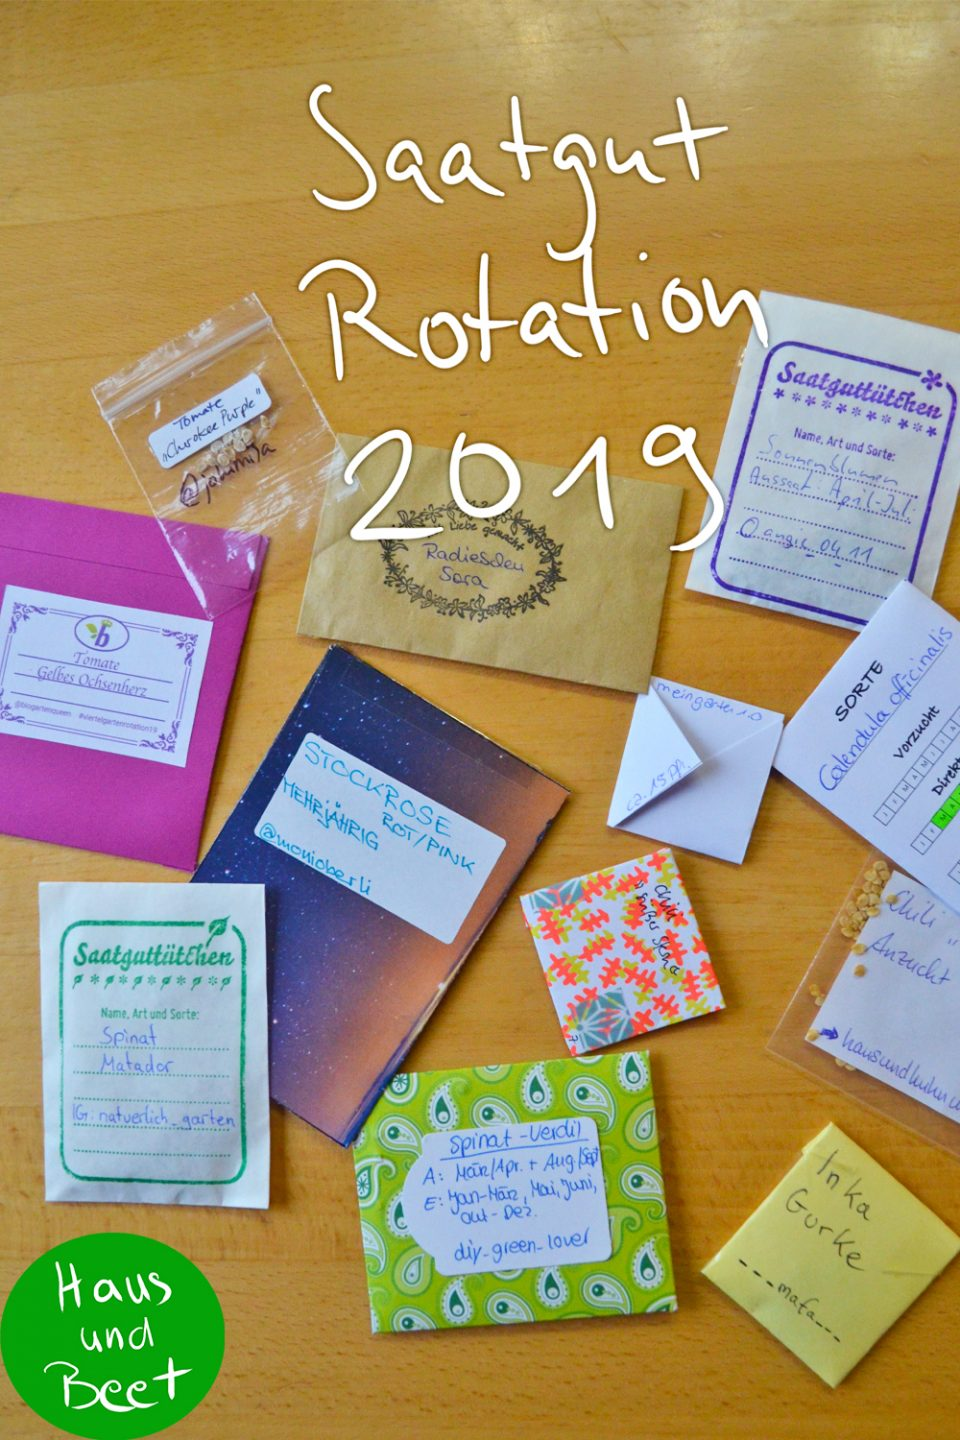 Saatgut Rotation 2019